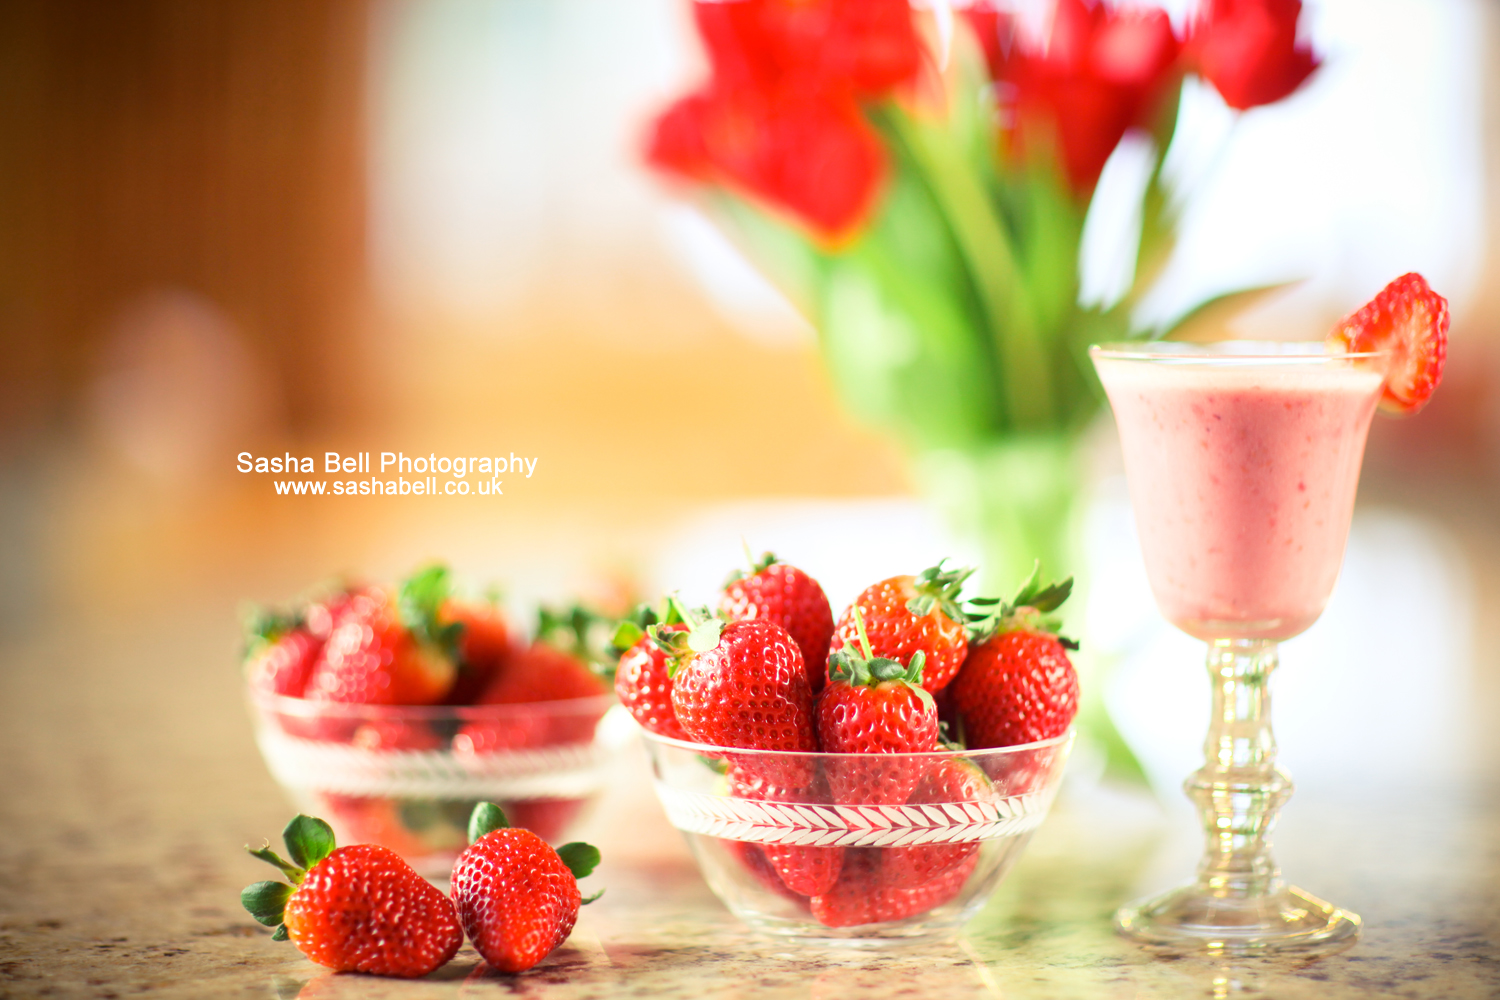 Strawberries and Strawberry Smoothie